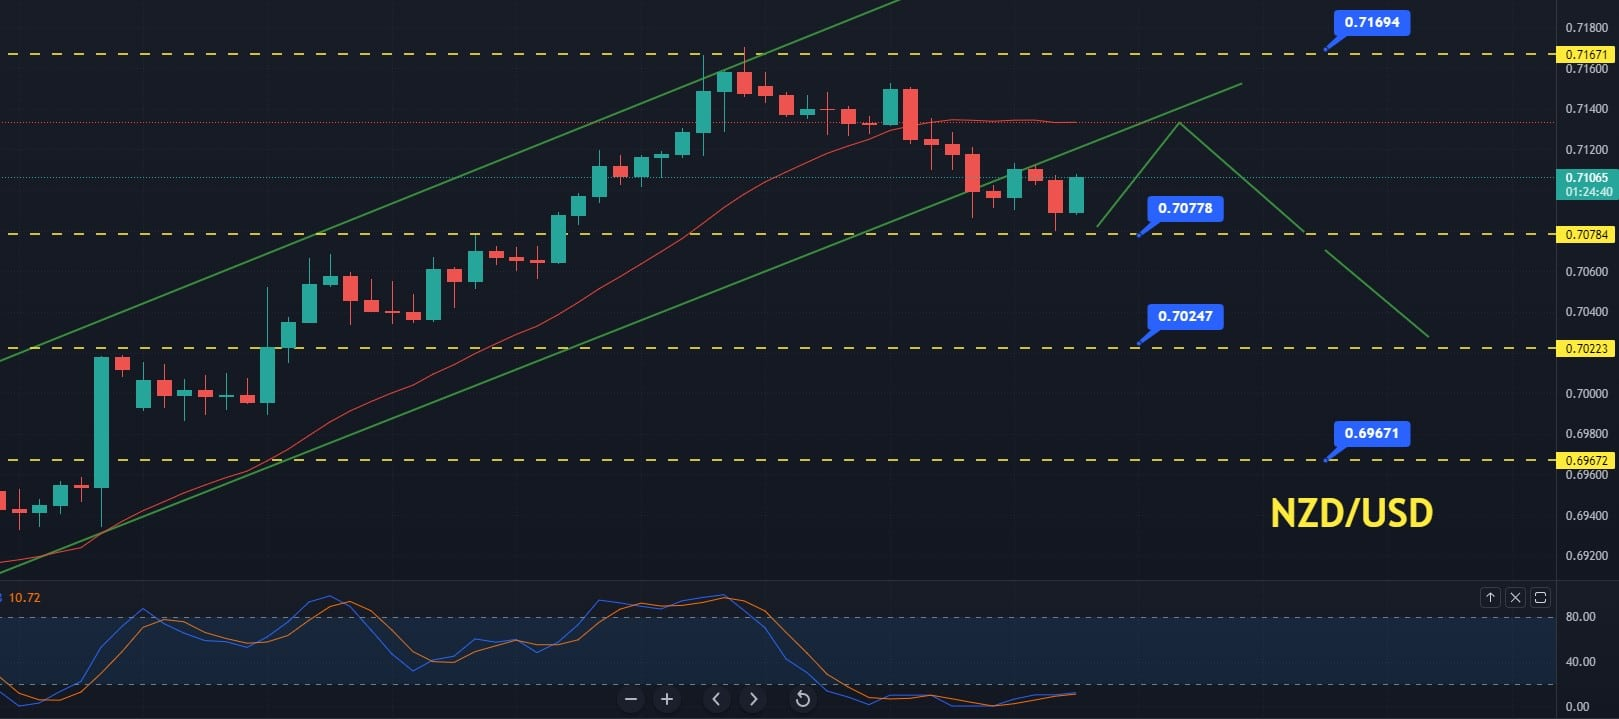 NZD/USD violates the channel at 0.7115: NZD Manufacturing Sales Ahead